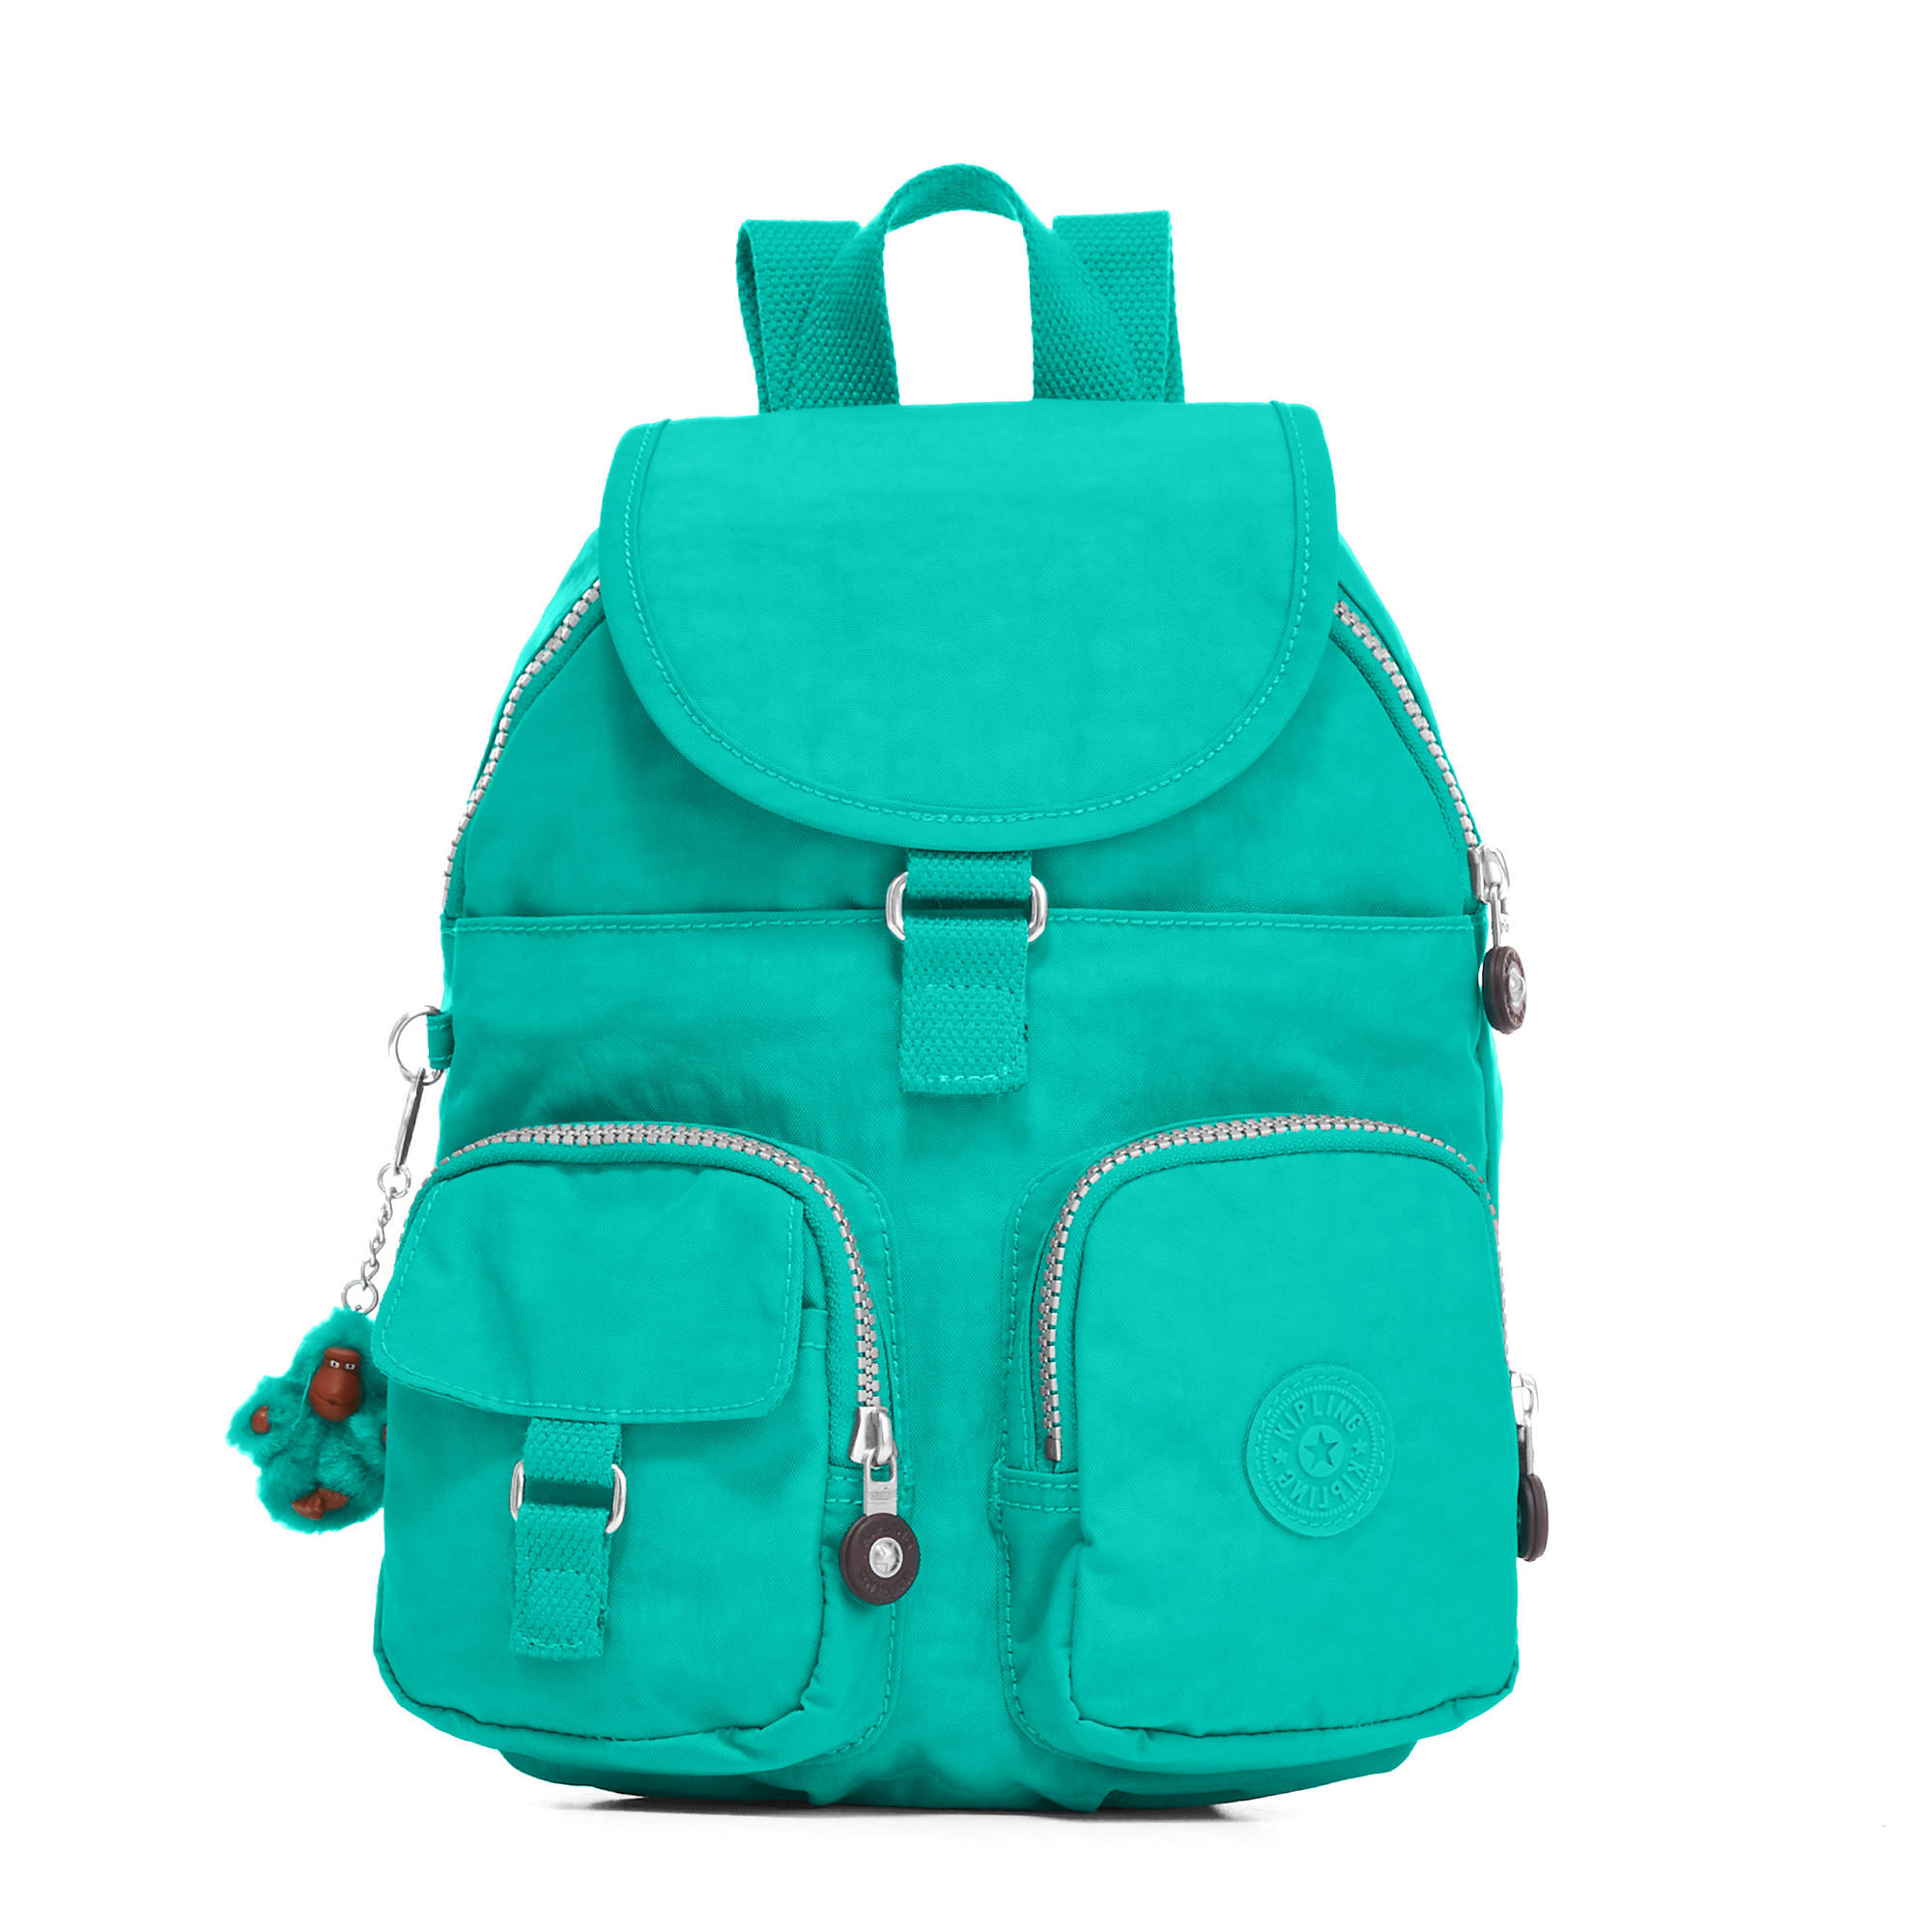 Lovebug Small Backpack - Jasmine Green | Kipling